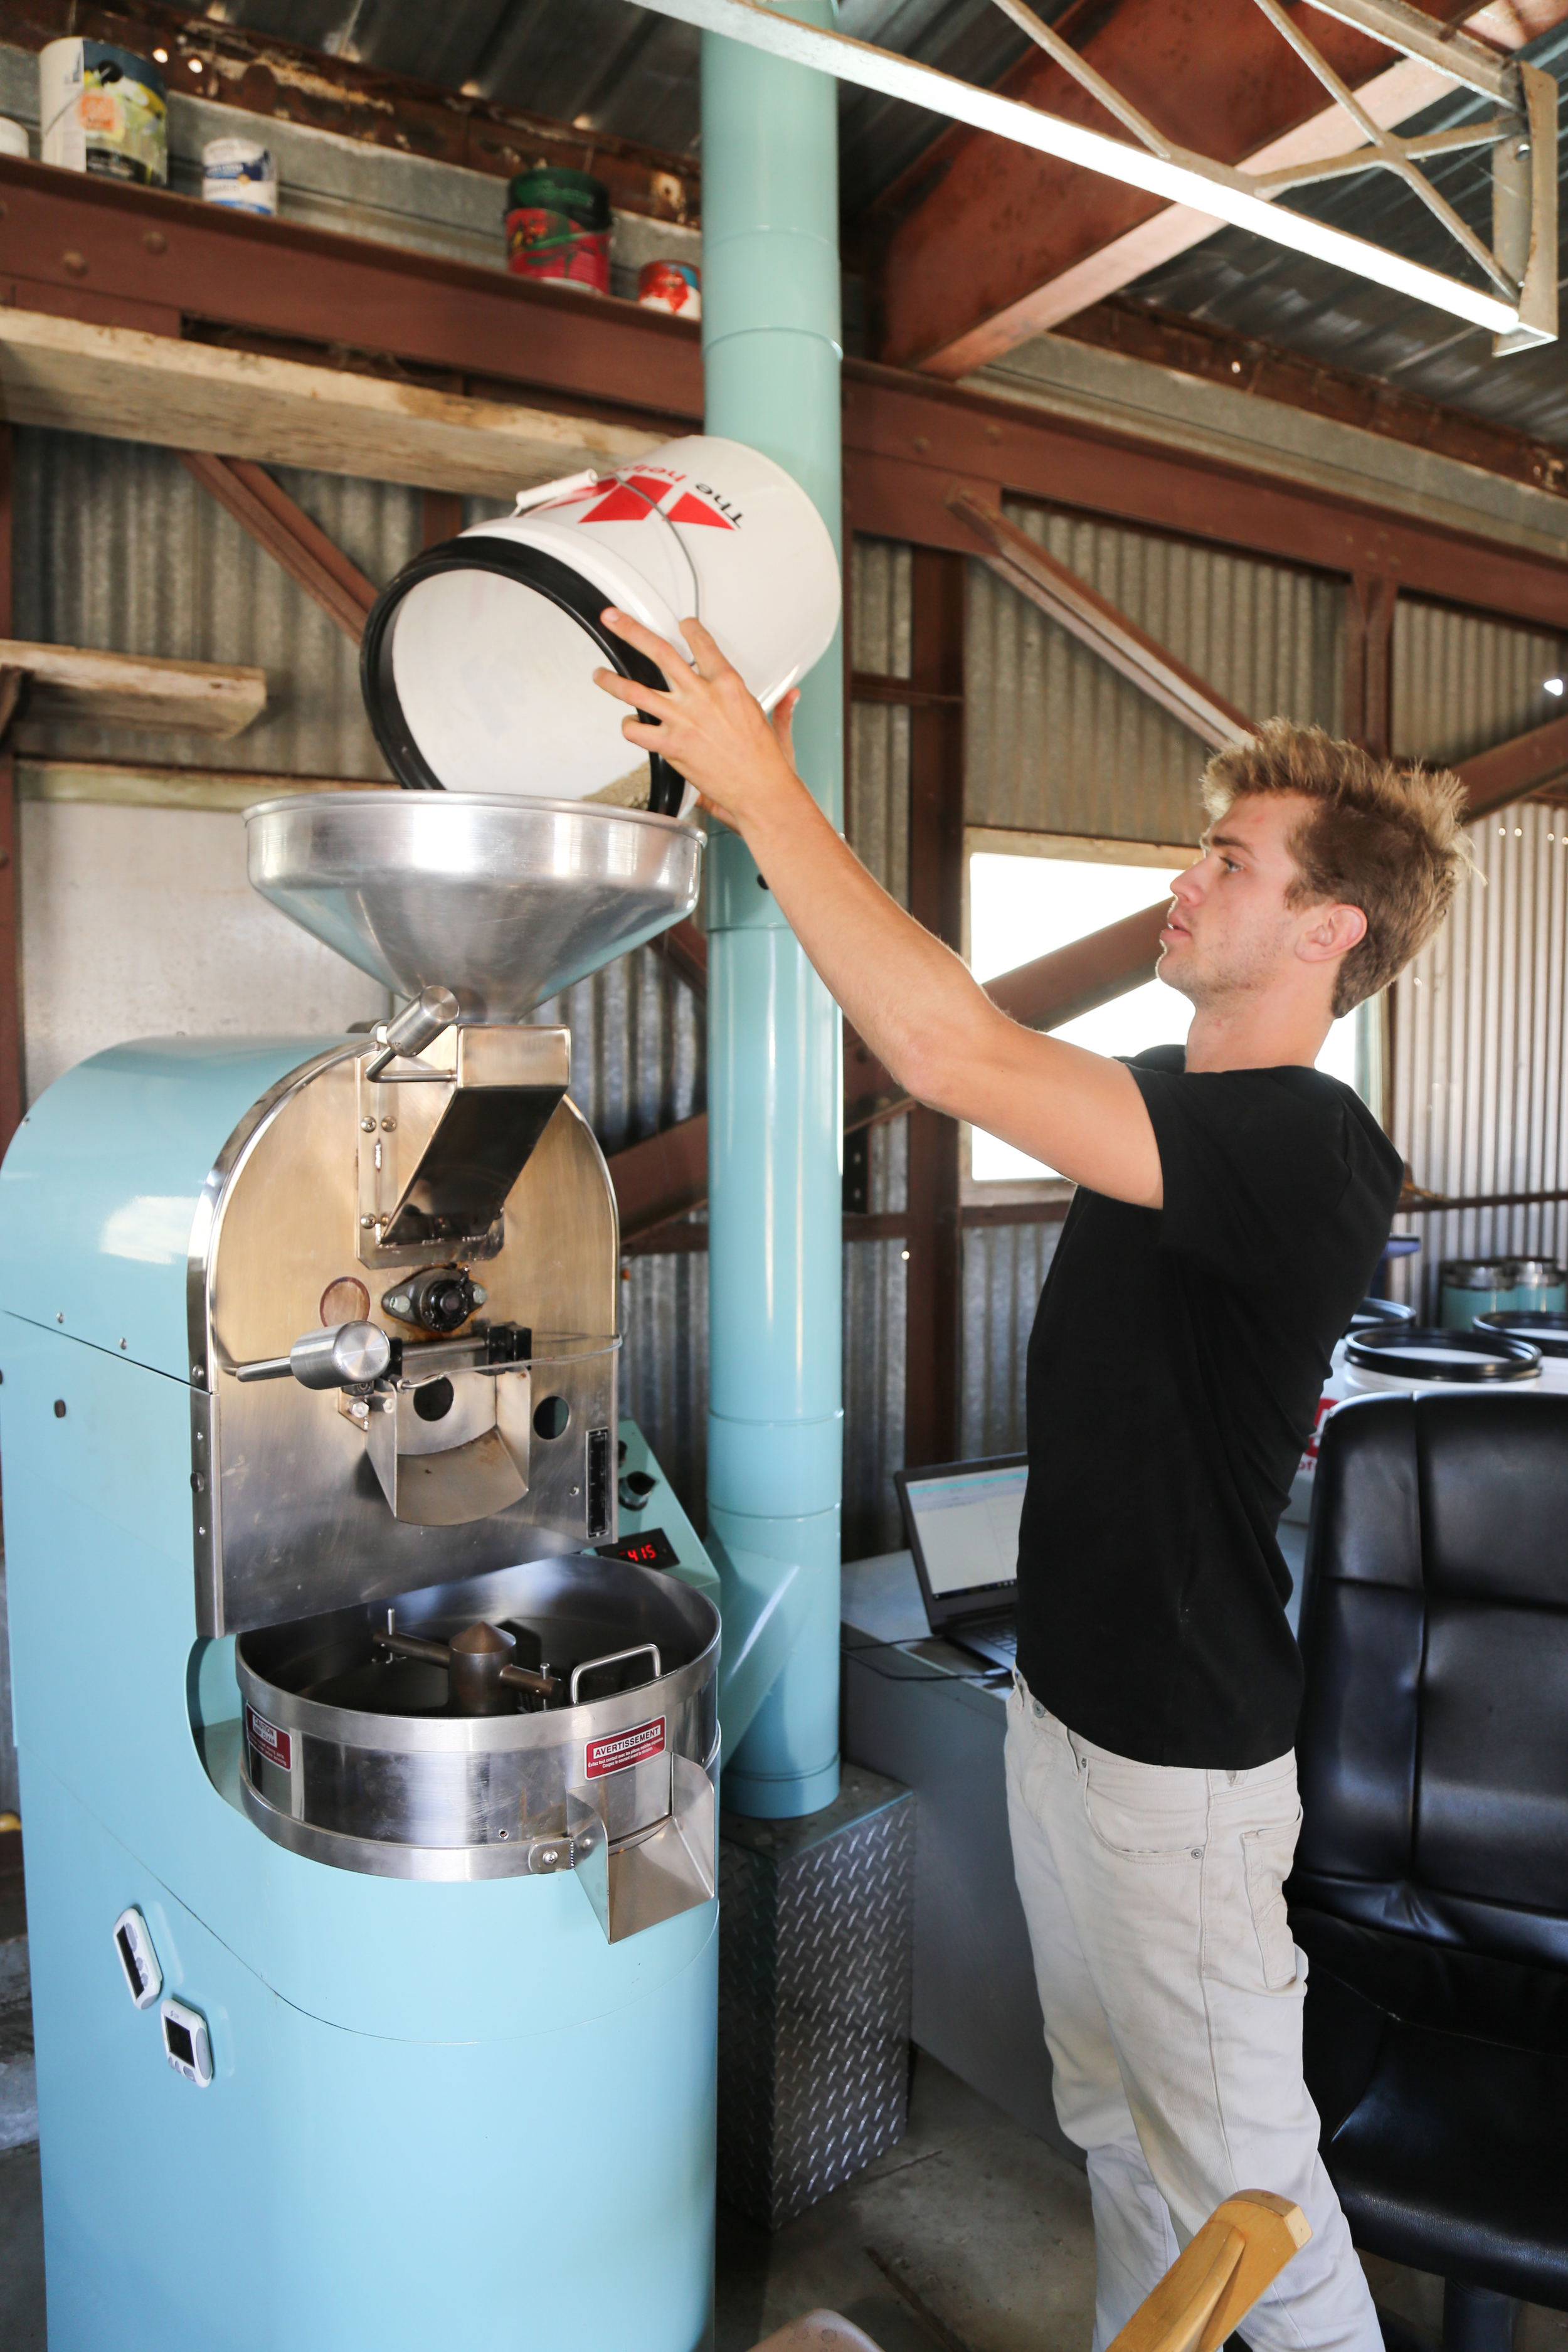 Paradigm Coffee co-founder and Roastmaster Reid Patterson roasts site-specific beans from Costa Rica with a state-of-the-art roaster he purchased from friend and fellow specialty coffee nerd Jonathan Strauf, owner of downtown coffee hub Bello Mundo.   PHOTO BY DYLAN HONNEA-BAUMANN